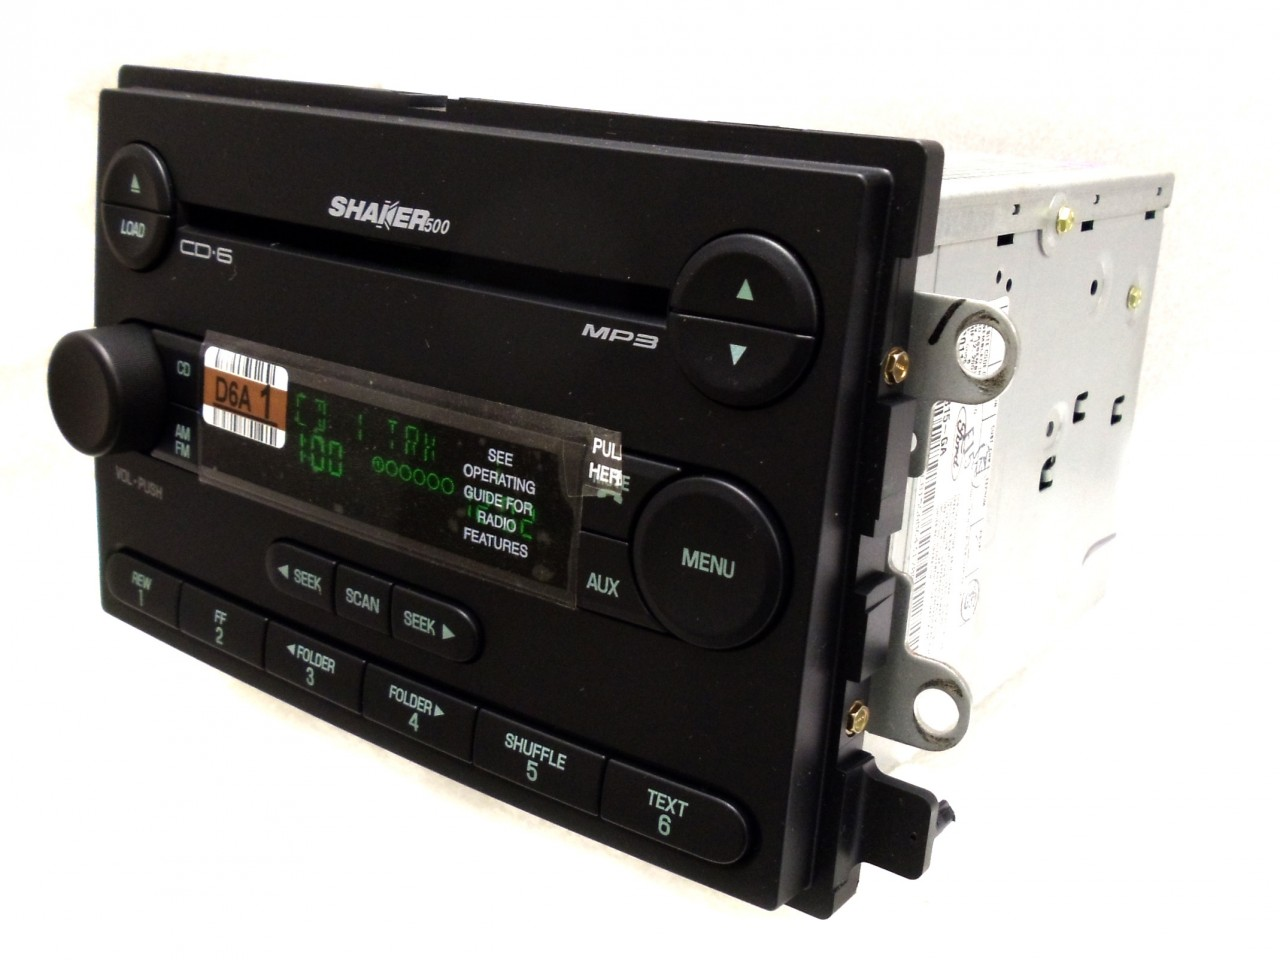 05 06 Ford Mustang Shaker 500 Radio Stereo 6  CD Disc Changer Player